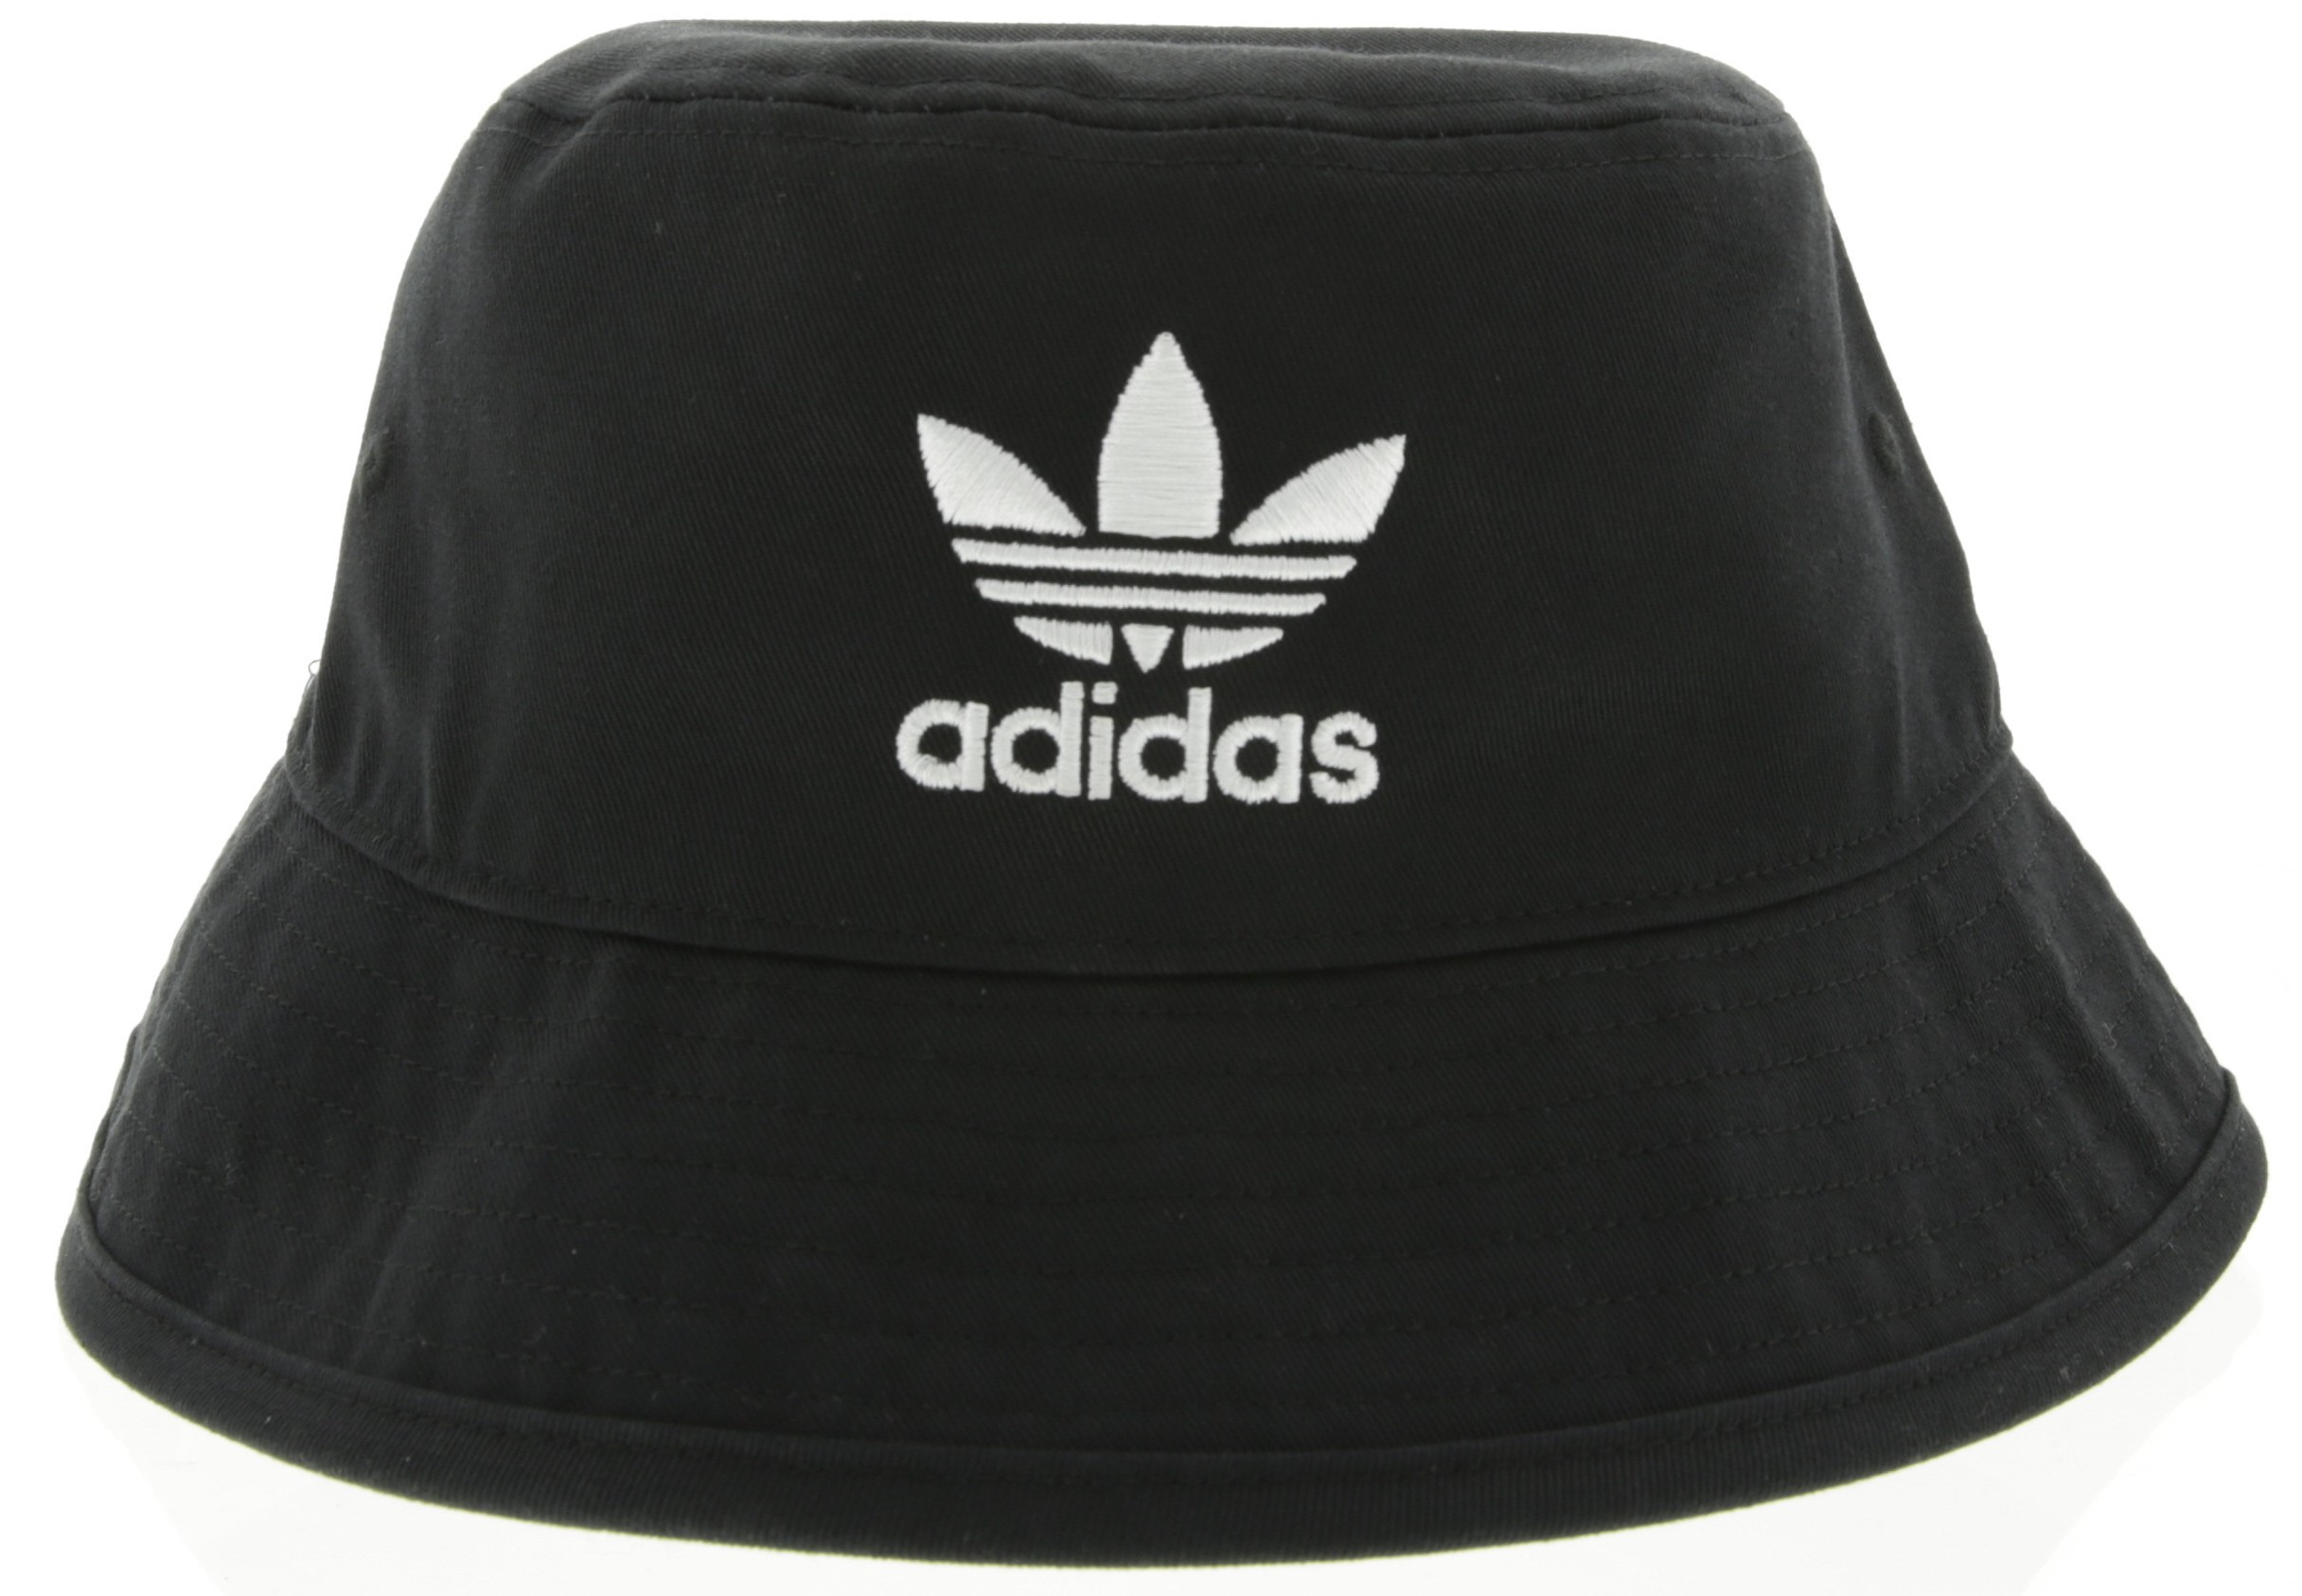 adidas bucket hat in black GLVBAMW